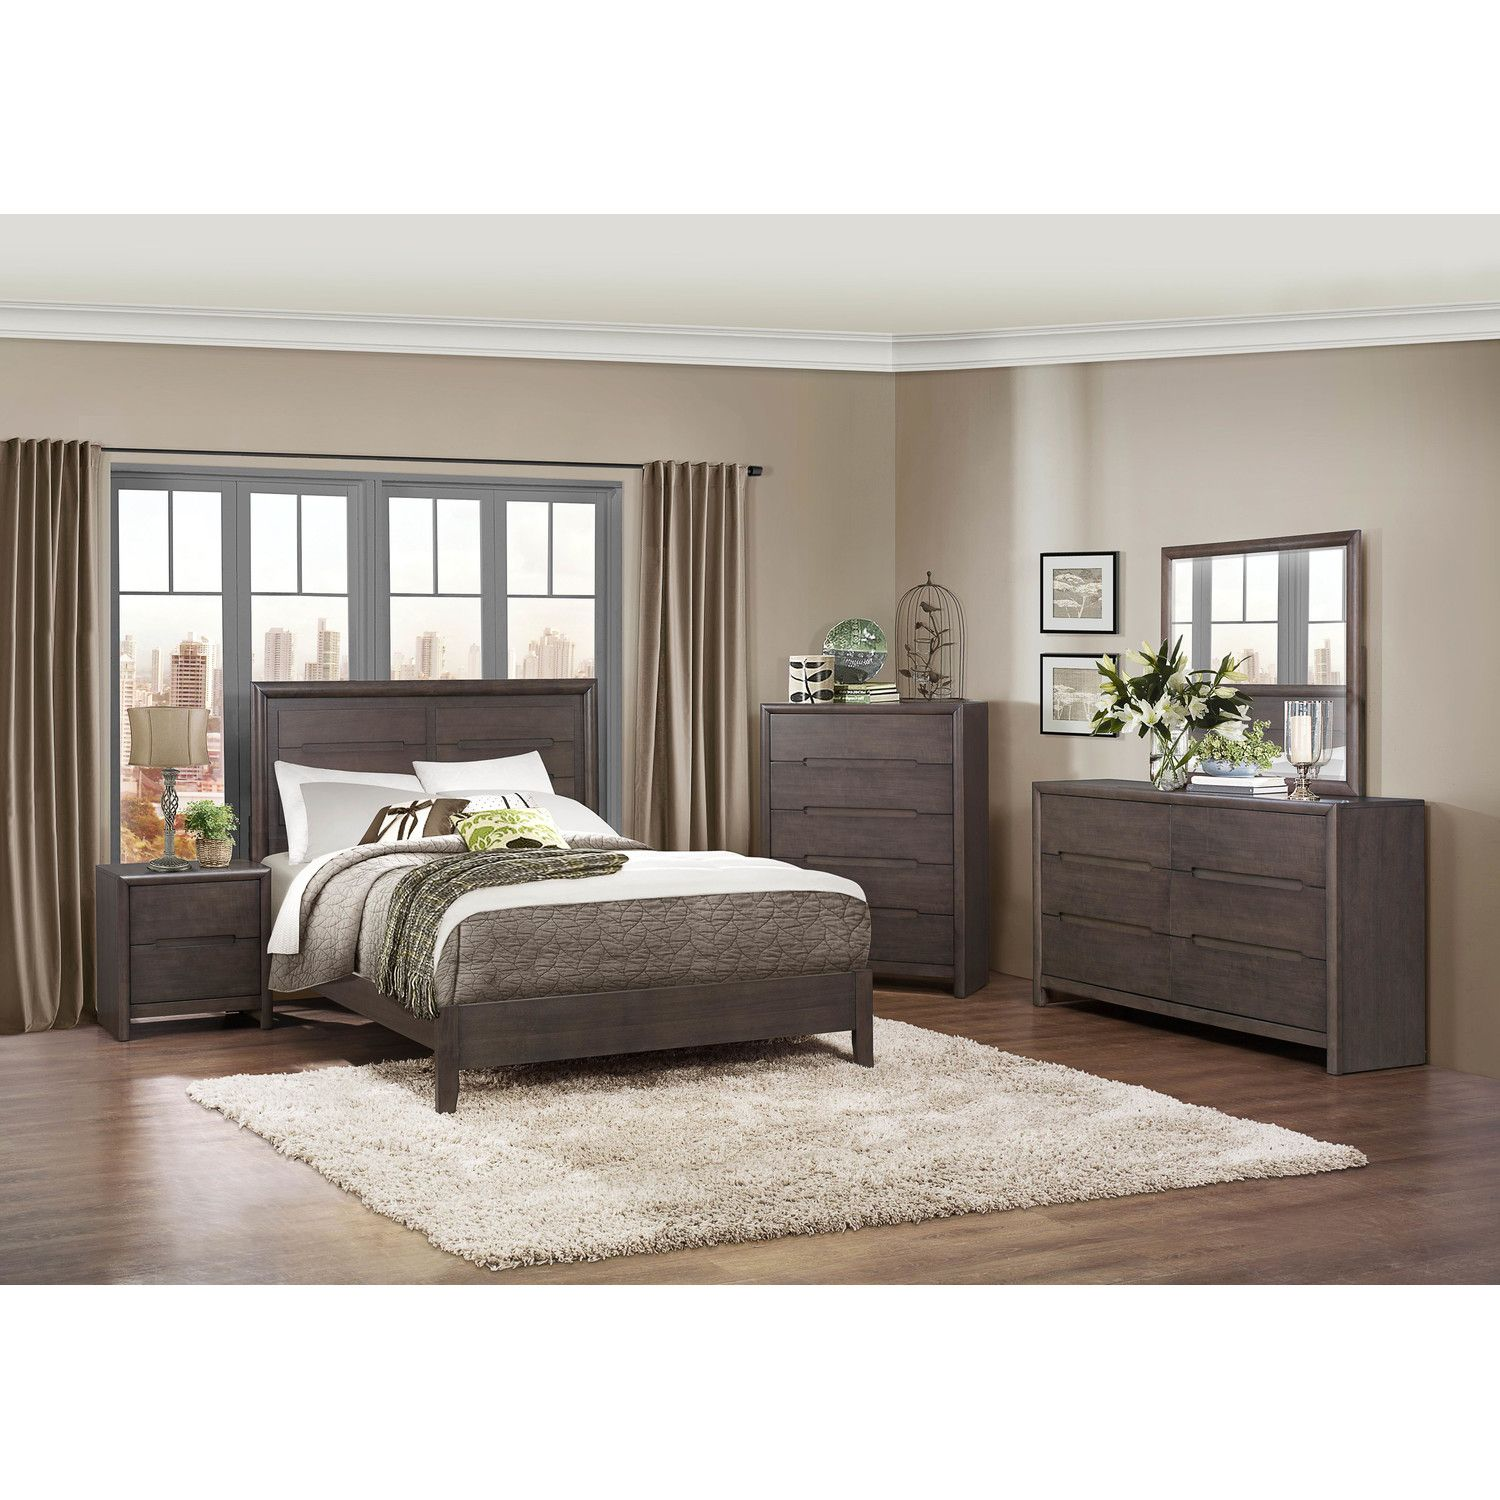 Black Rustic Bedroom Furniture pinchelsea spurlock on bedroom sets | pinterest | modern